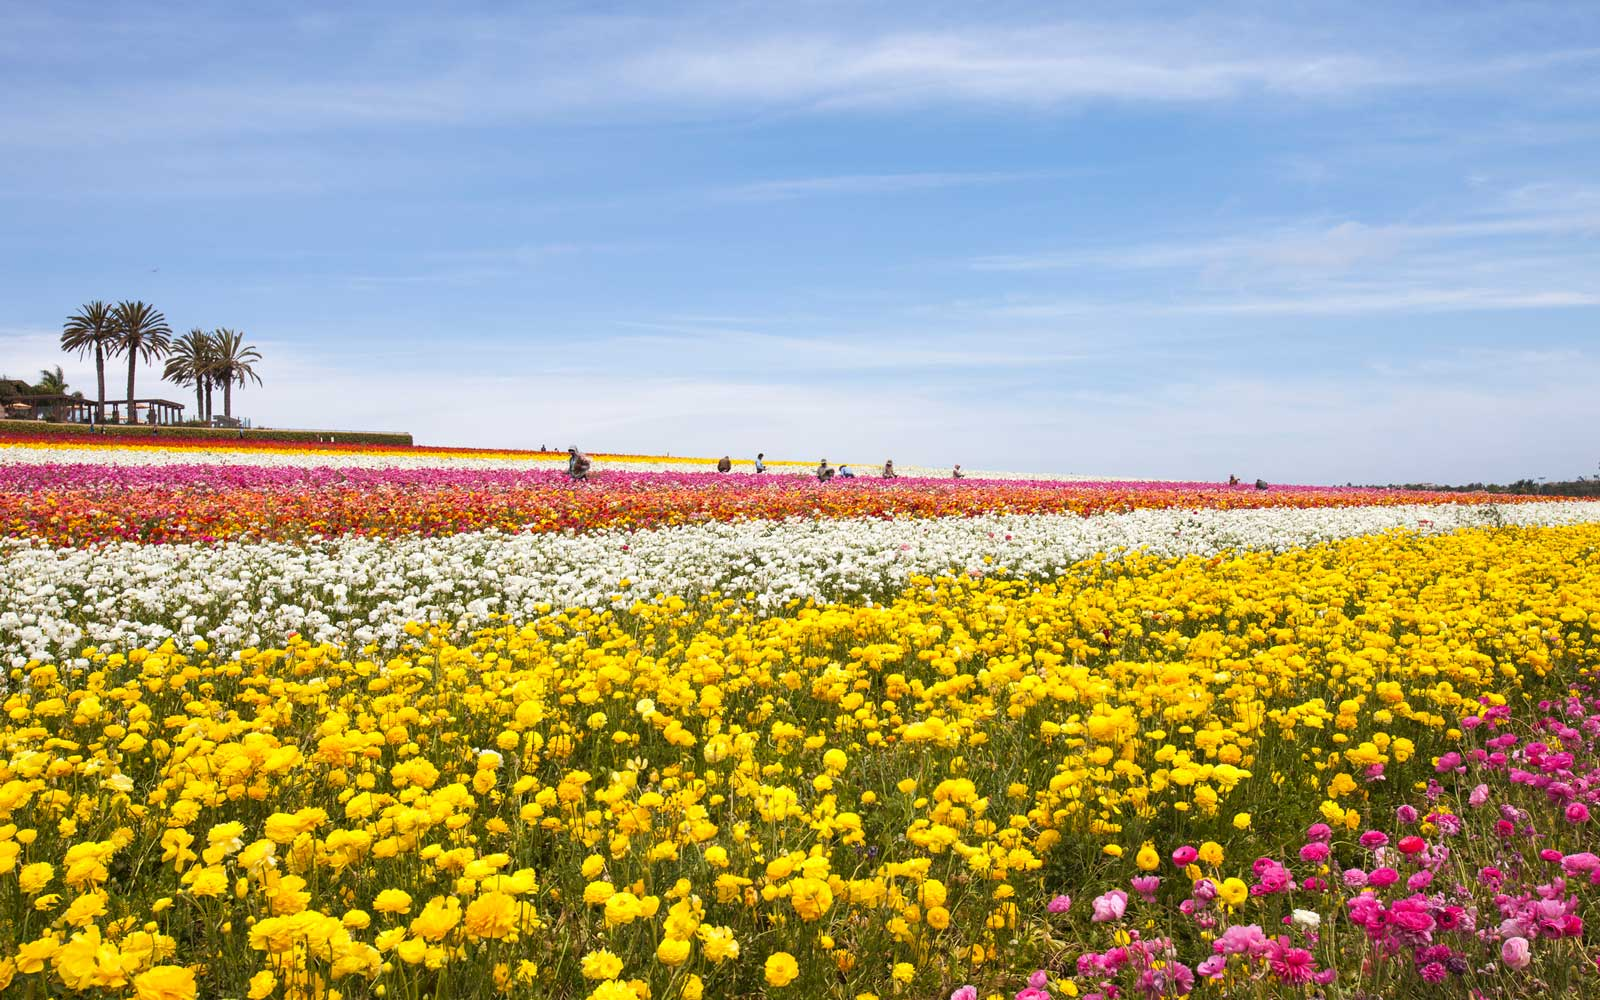 A field of bright flowers on a clear summer day in Carlsbad, California